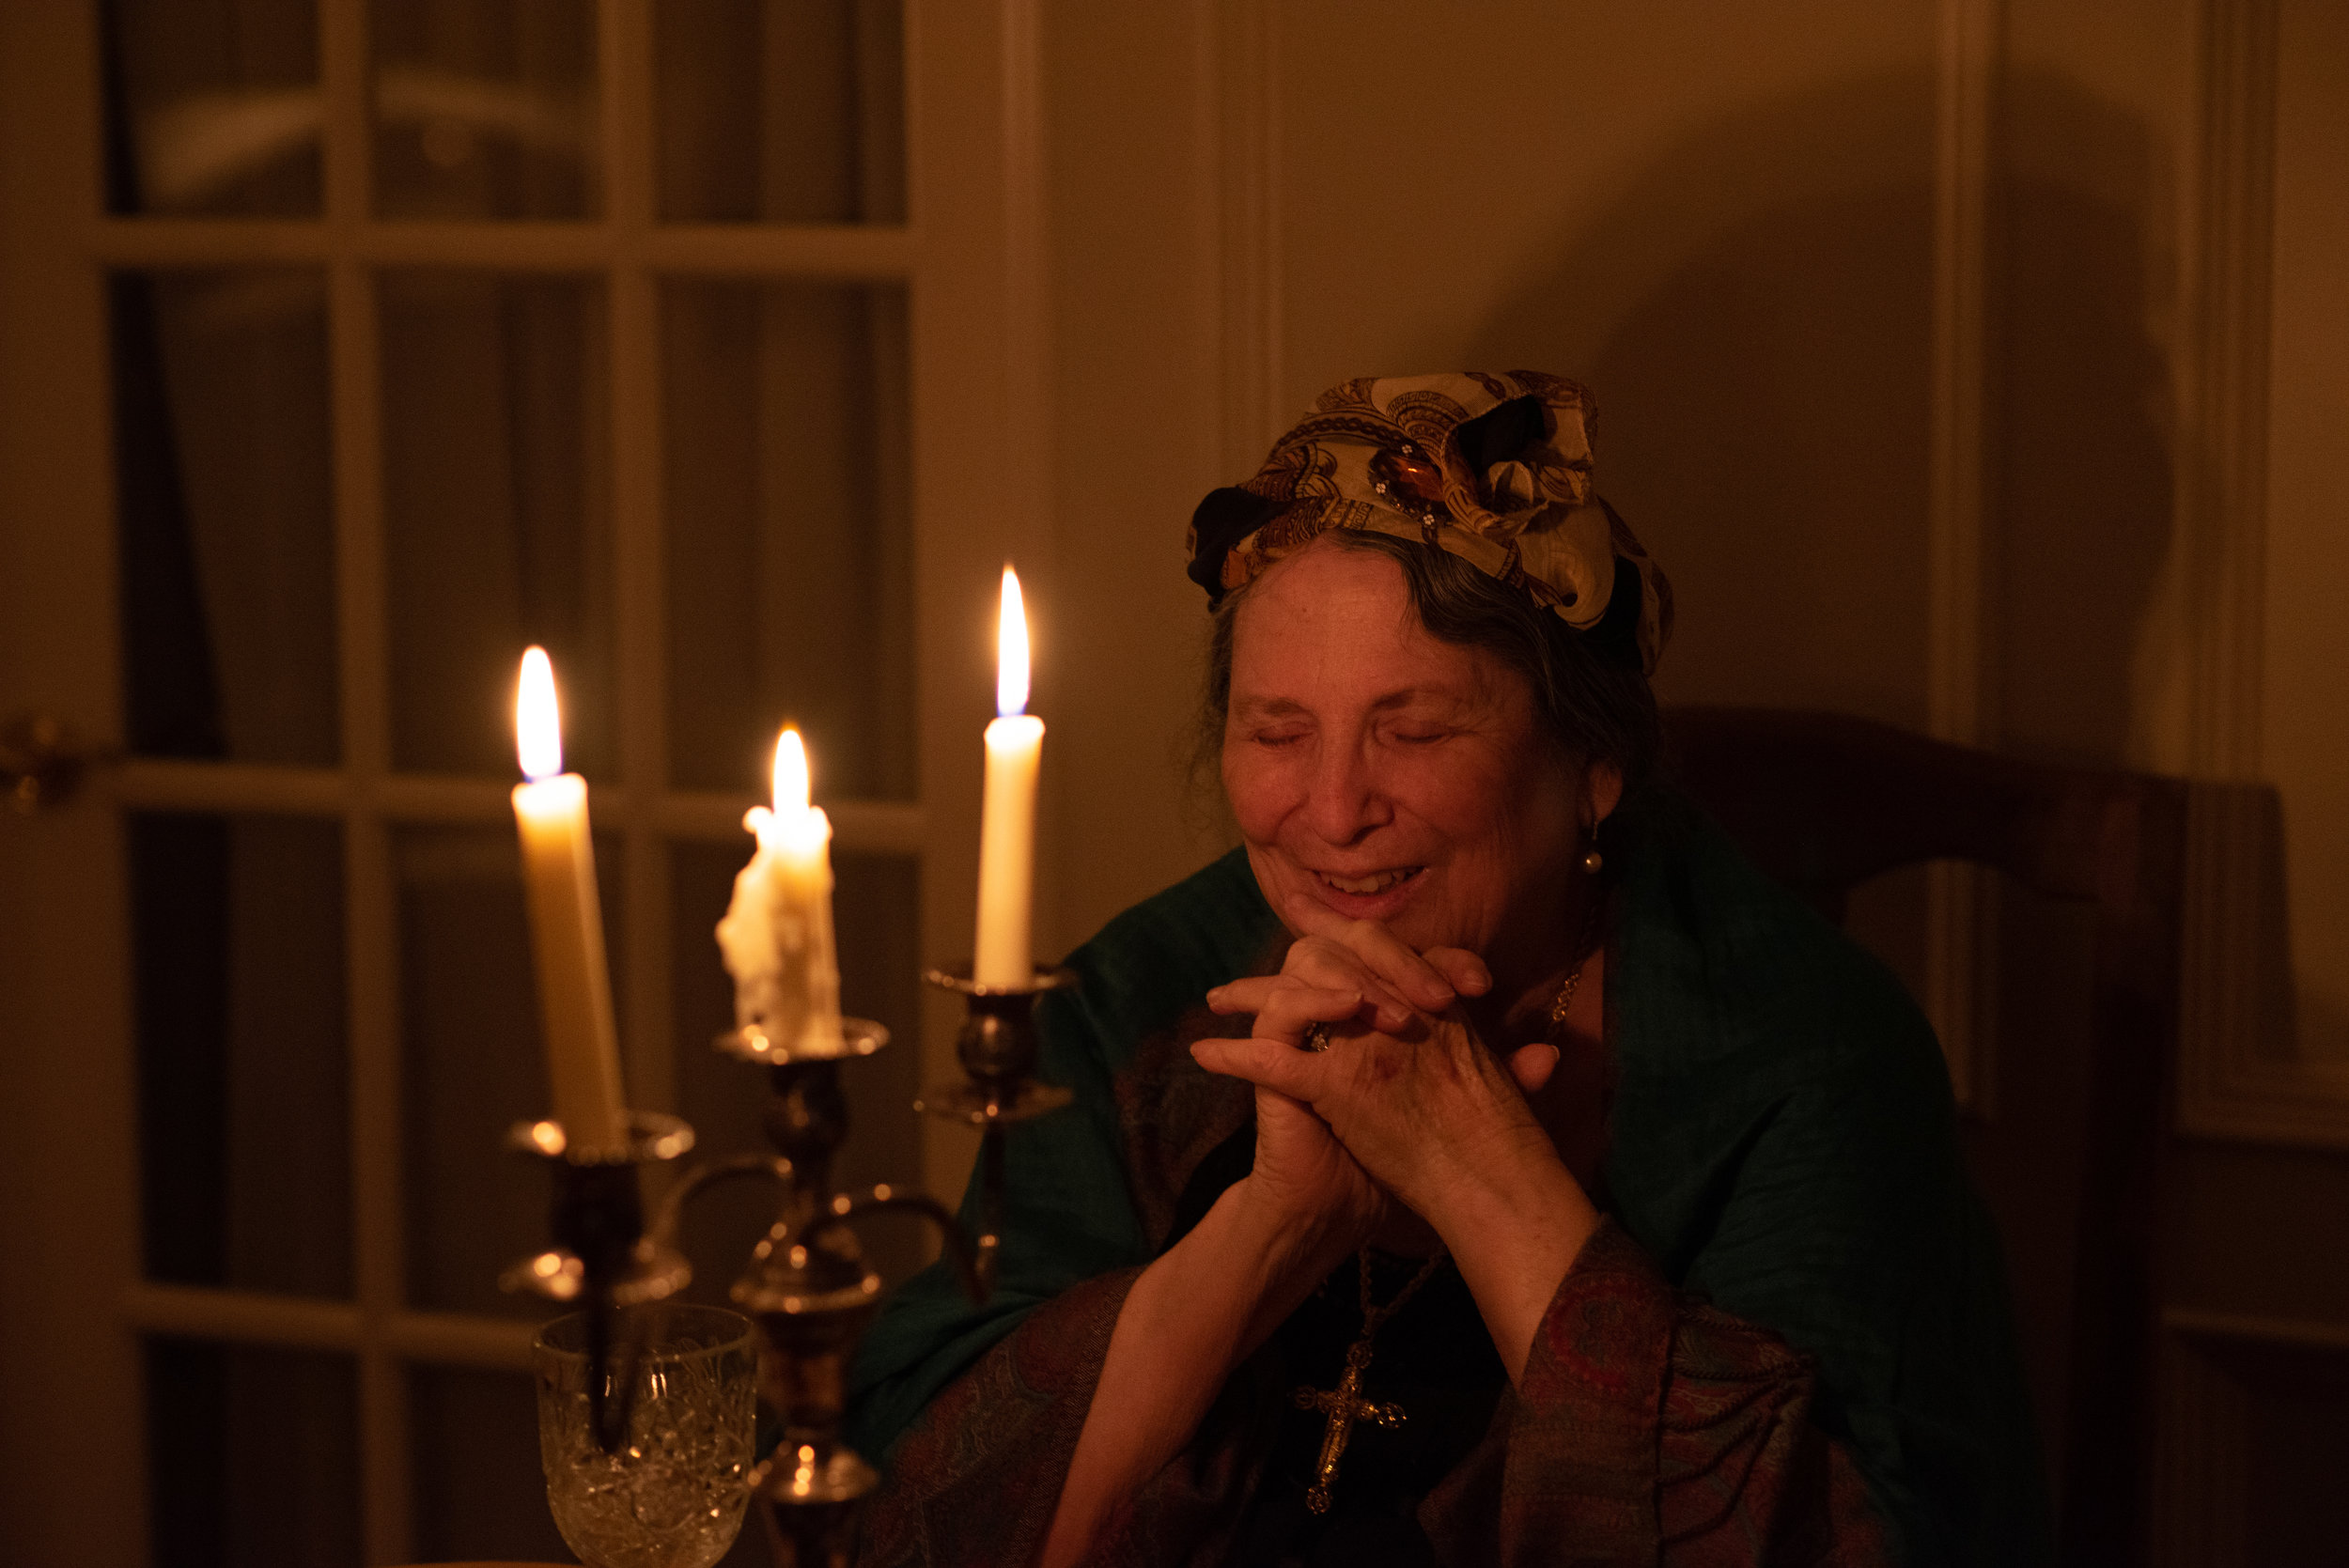 CandleLight really made this portrait shine! - A scene straight out of a Jane Austen Novel